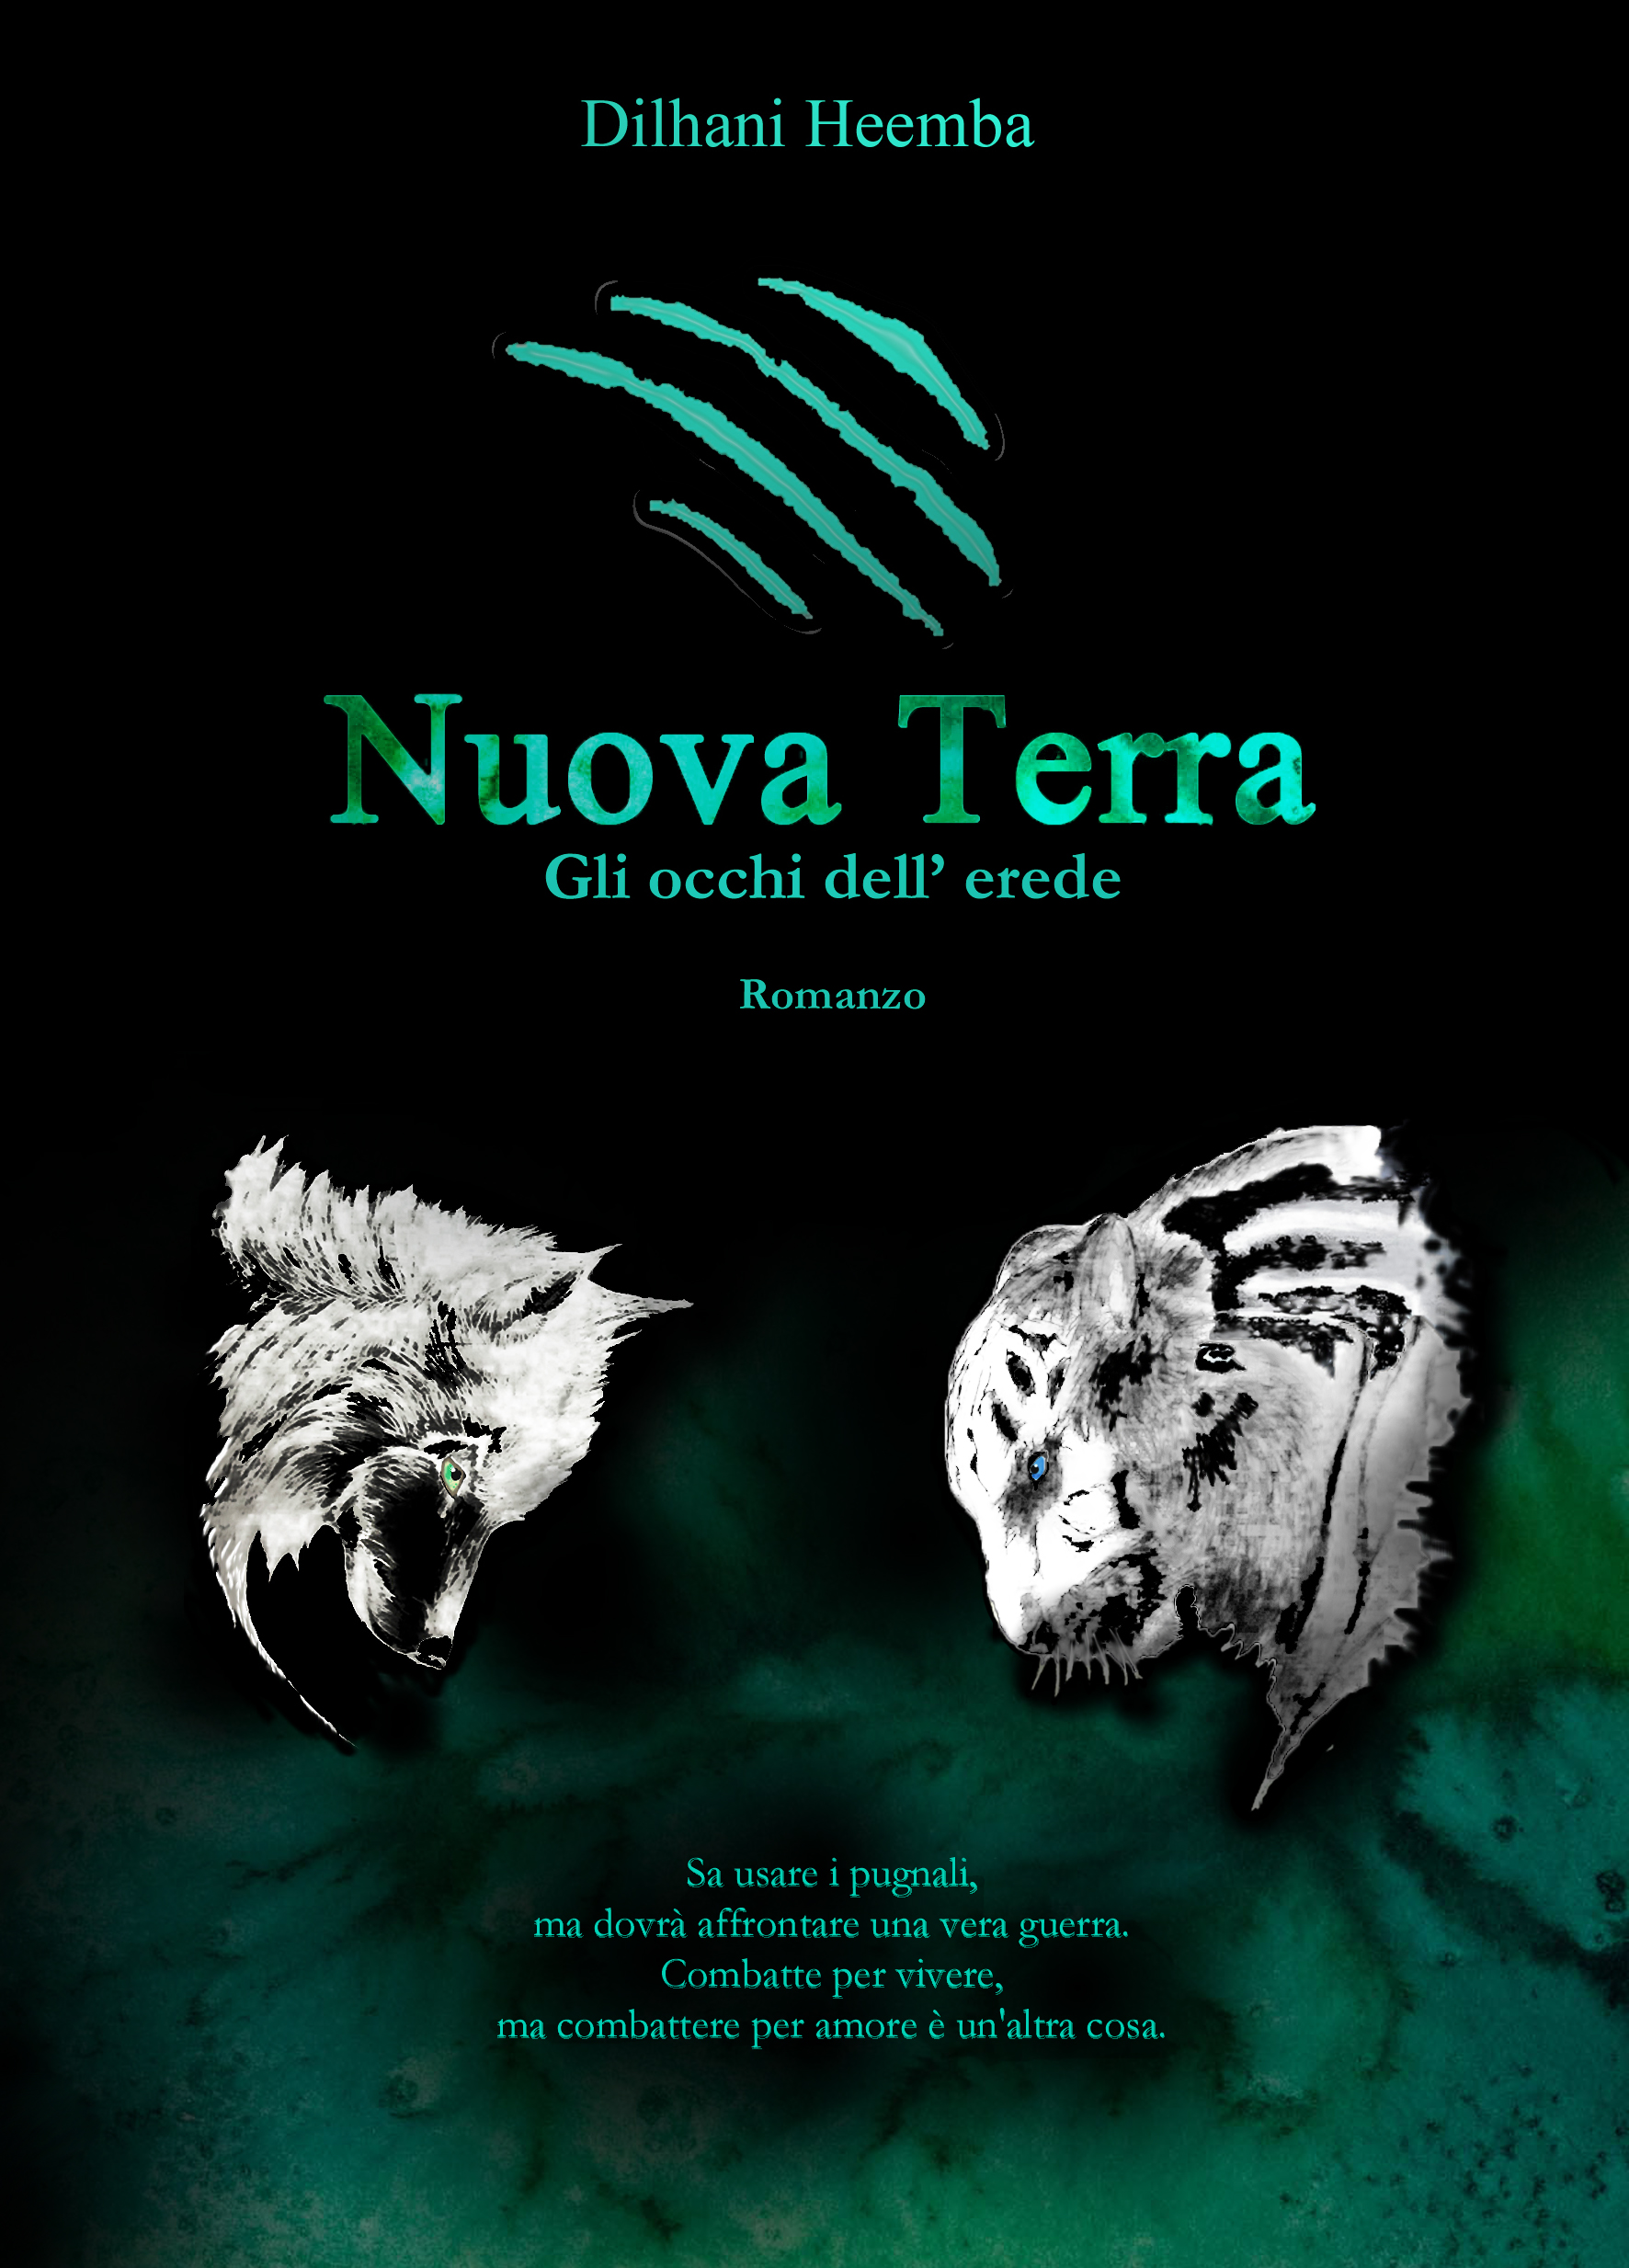 More about Nuova Terra